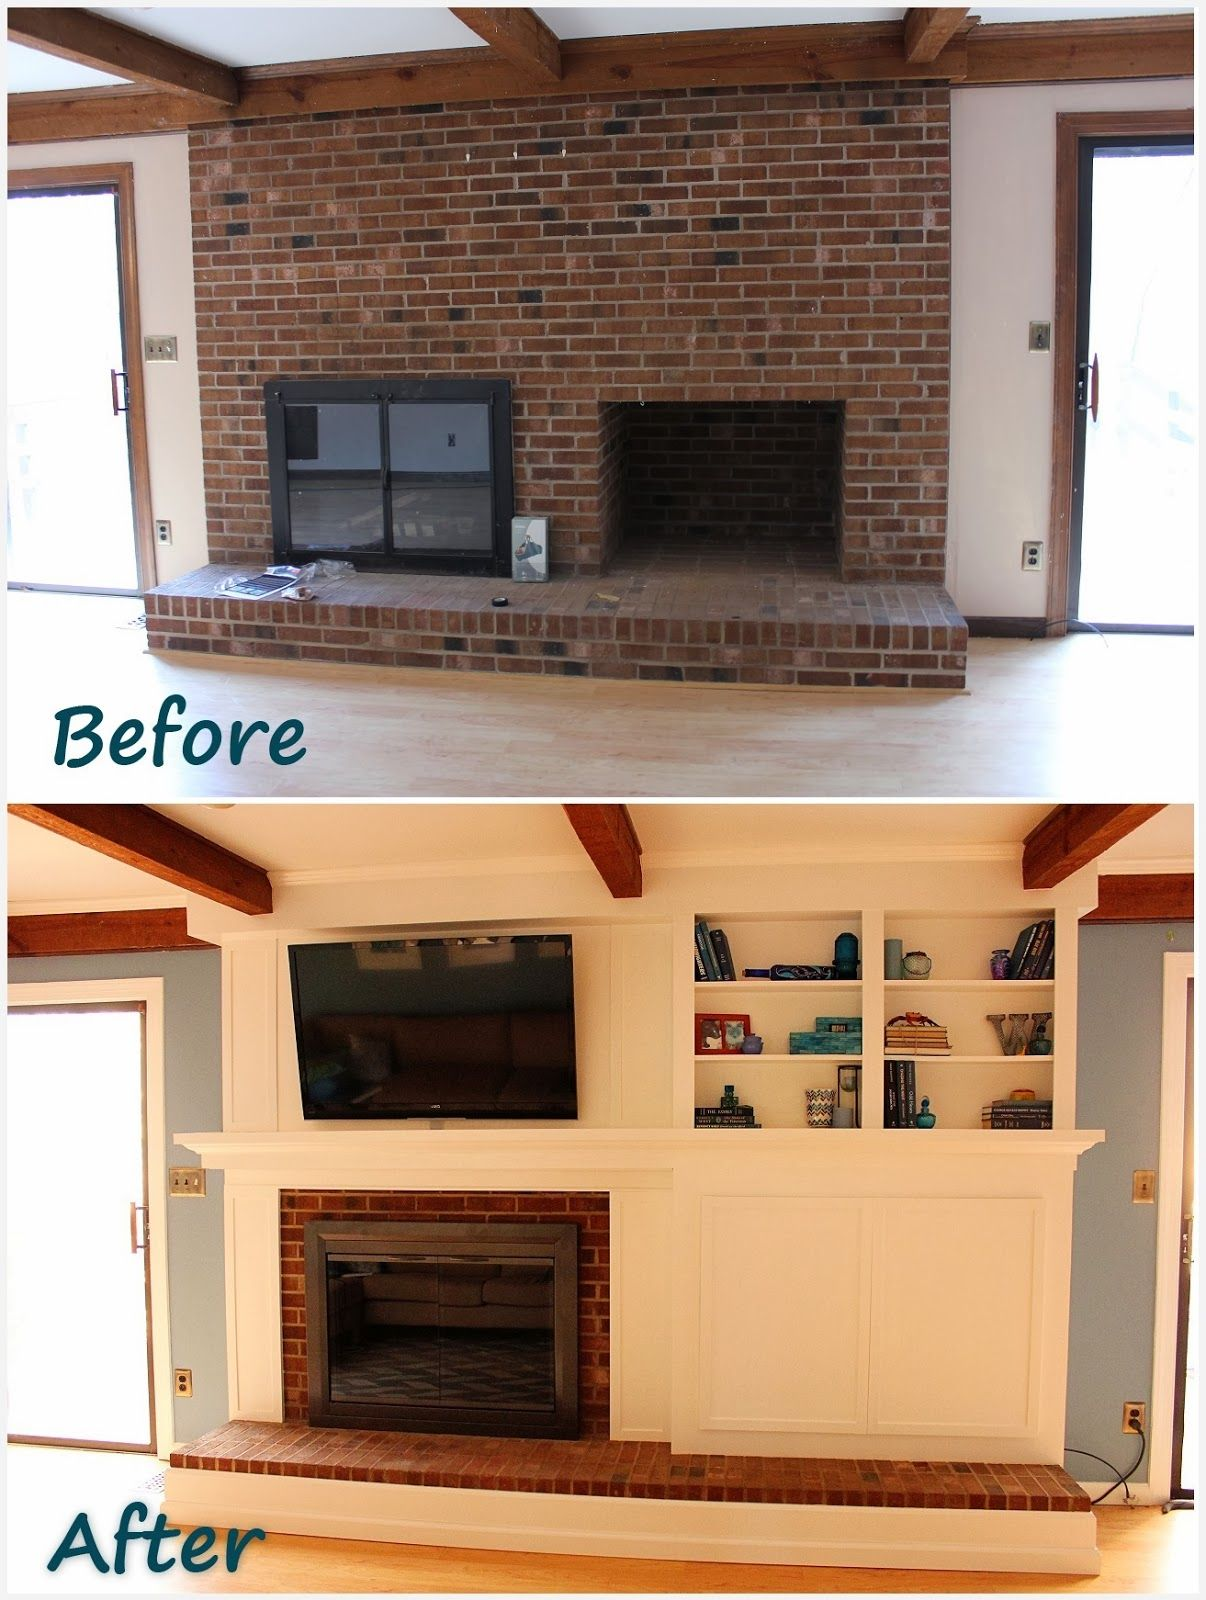 Fireplace Remodel Diy A Fireplace Facade To Cover An Old Brick